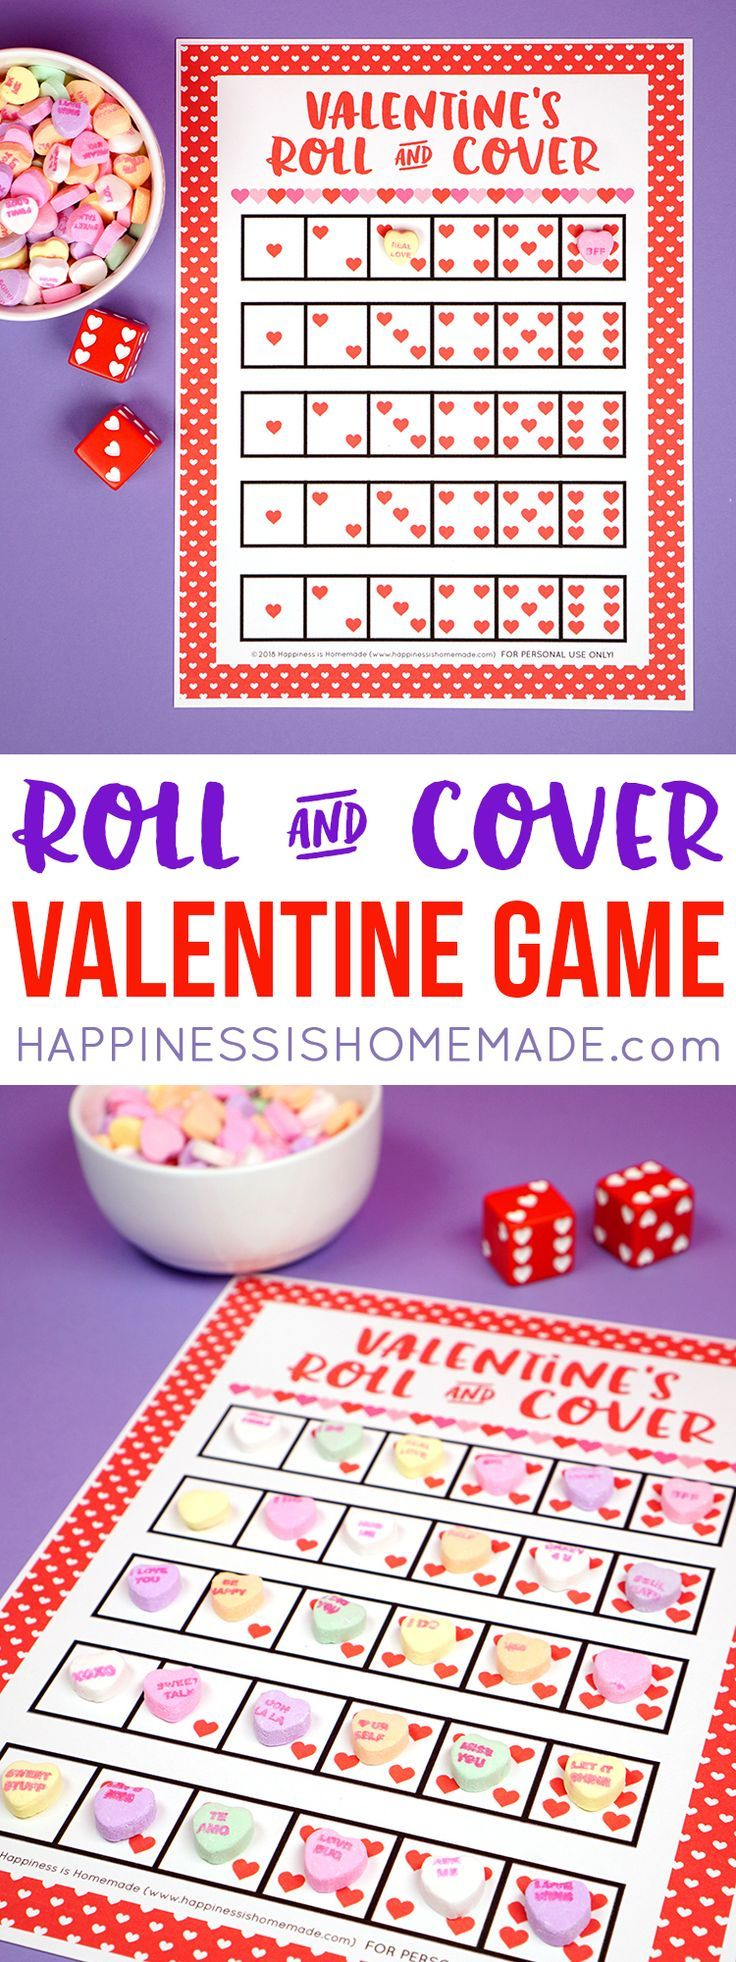 Valentine Games - Roll & Cover - Looking for a fun and easy Valentine's Day game for your classroom, family, church, or playgroup? This Roll & Cover Valentine Game is fun for kids of all ages! Use our free printable valentines game and race to be the first to cover all of the dice with candy hearts! via @hiHomemadeBlog  #Valentine #Valentines #ValentinesDay